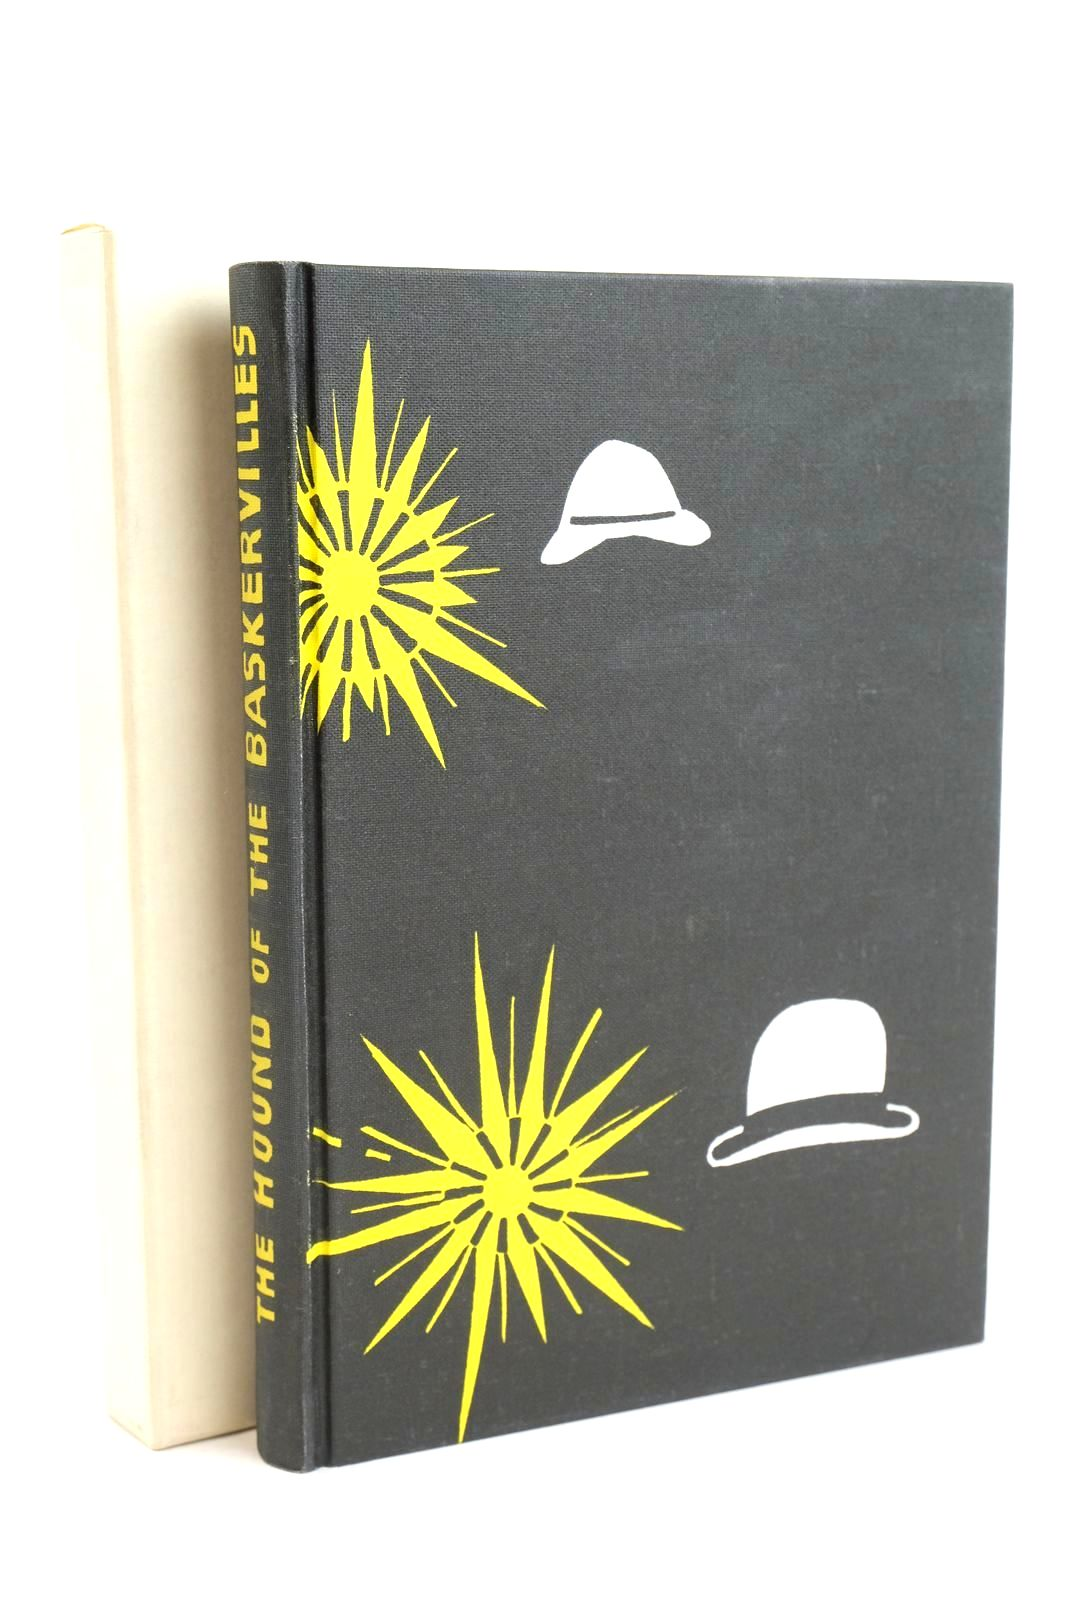 Photo of THE HOUND OF THE BASKERVILLES written by Doyle, Arthur Conan illustrated by Bawden, Edward published by Folio Society (STOCK CODE: 1320009)  for sale by Stella & Rose's Books